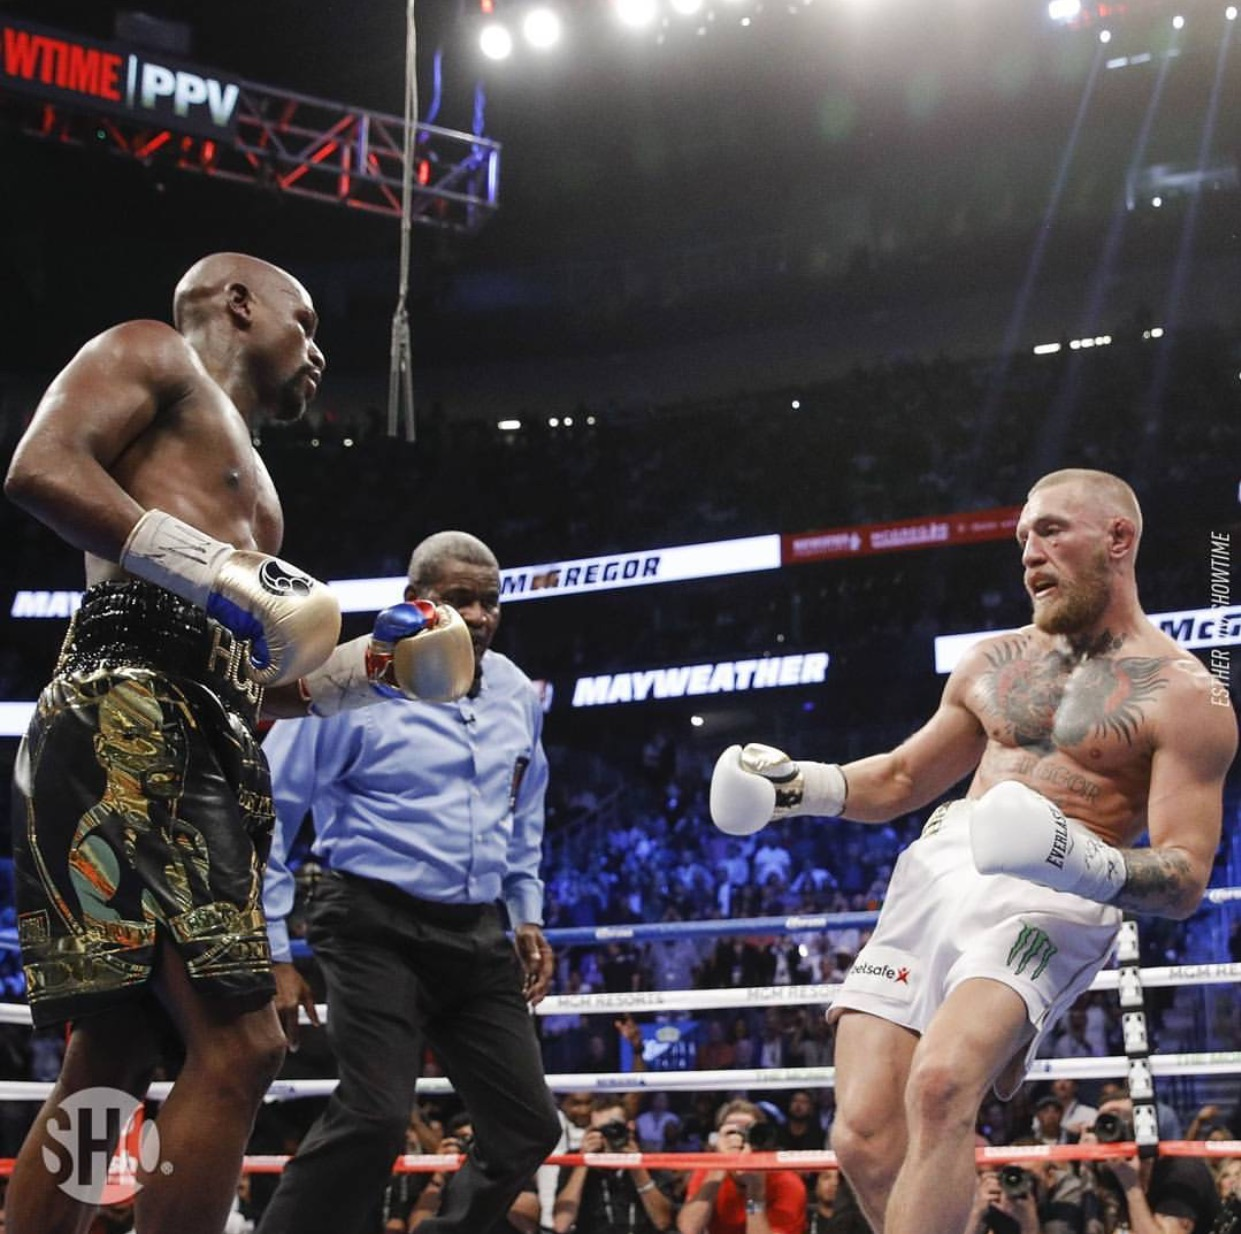 Floyd Mayweather stopped Conor McGregor in the 10th round in their huge Las Vegas fight on August 26th. Photo: Esther Lin/Showtime